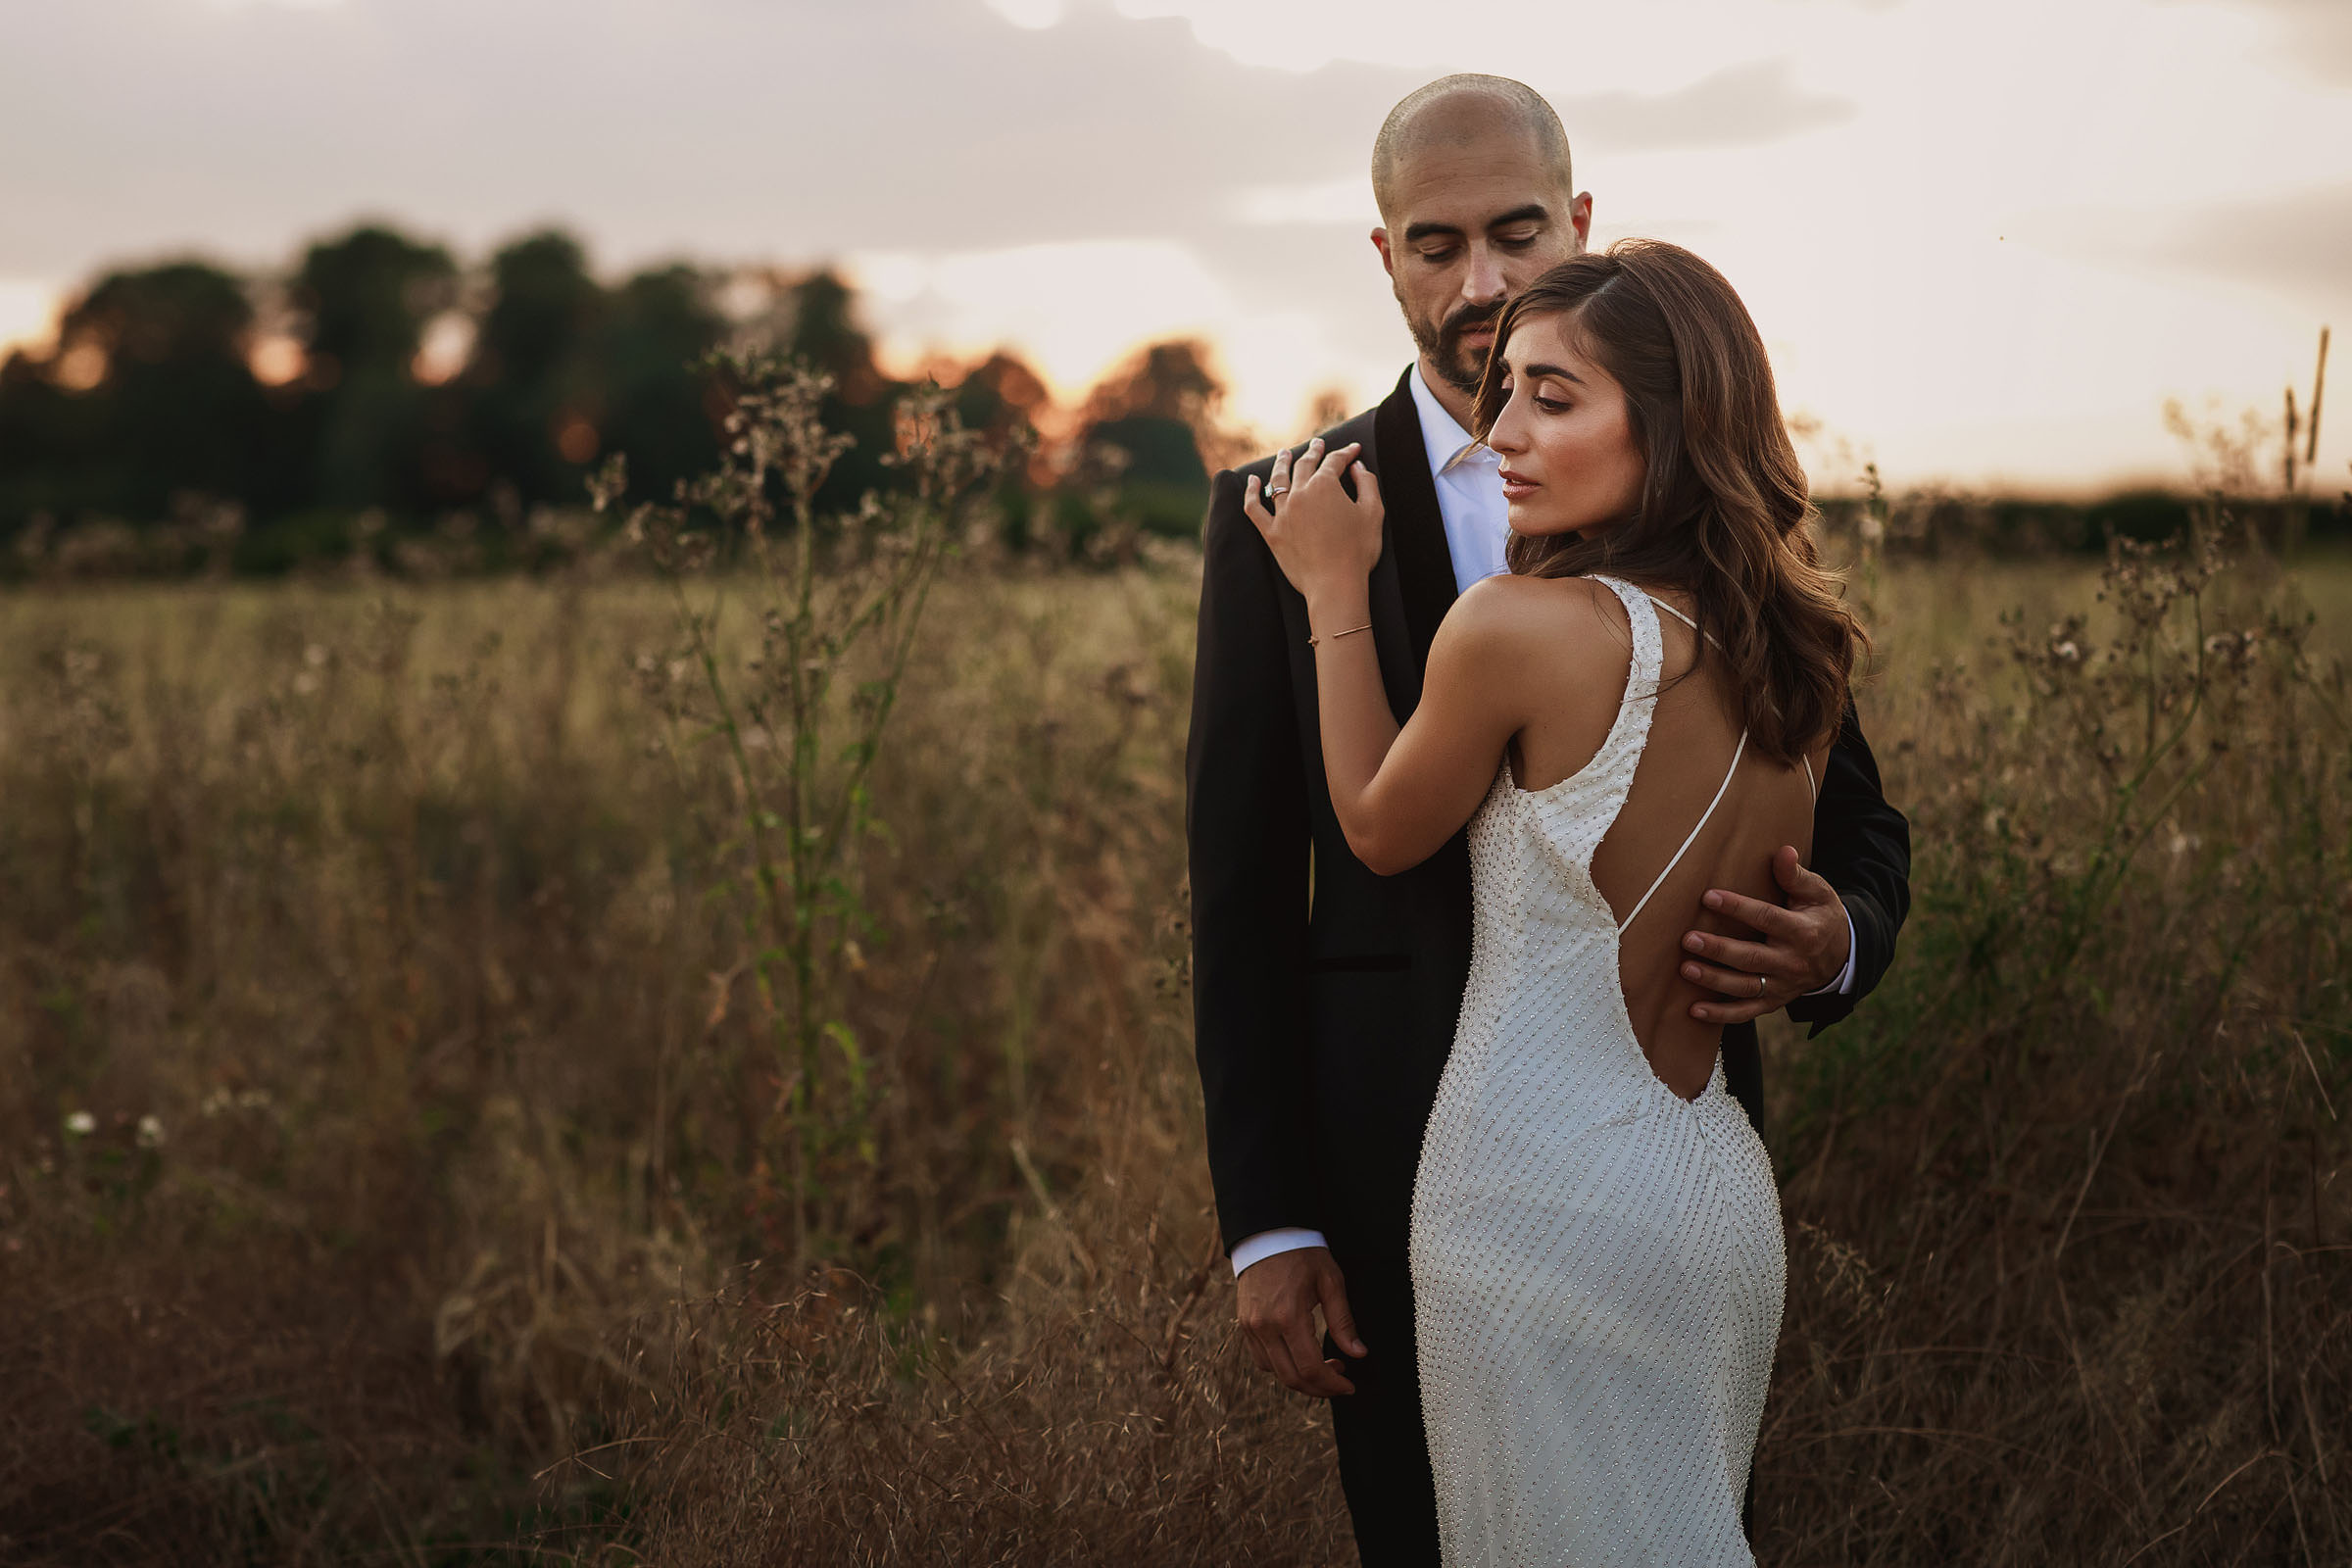 Couple portrait in a field - photo by F5 Photography